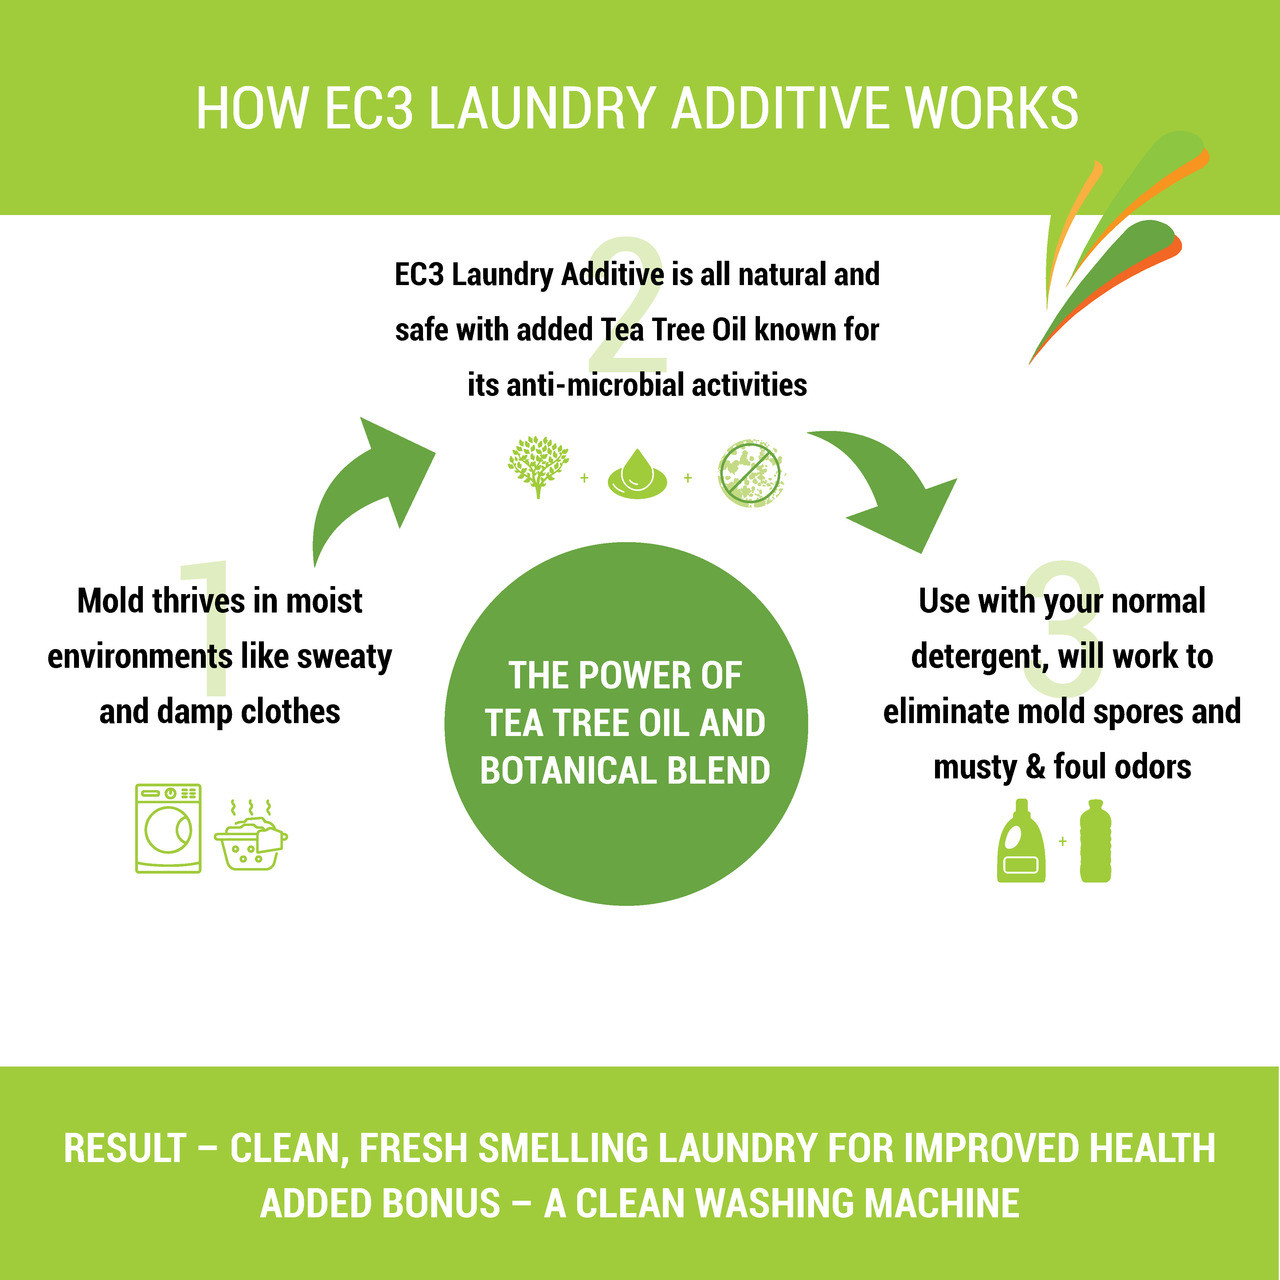 EC3 Laundry Additive